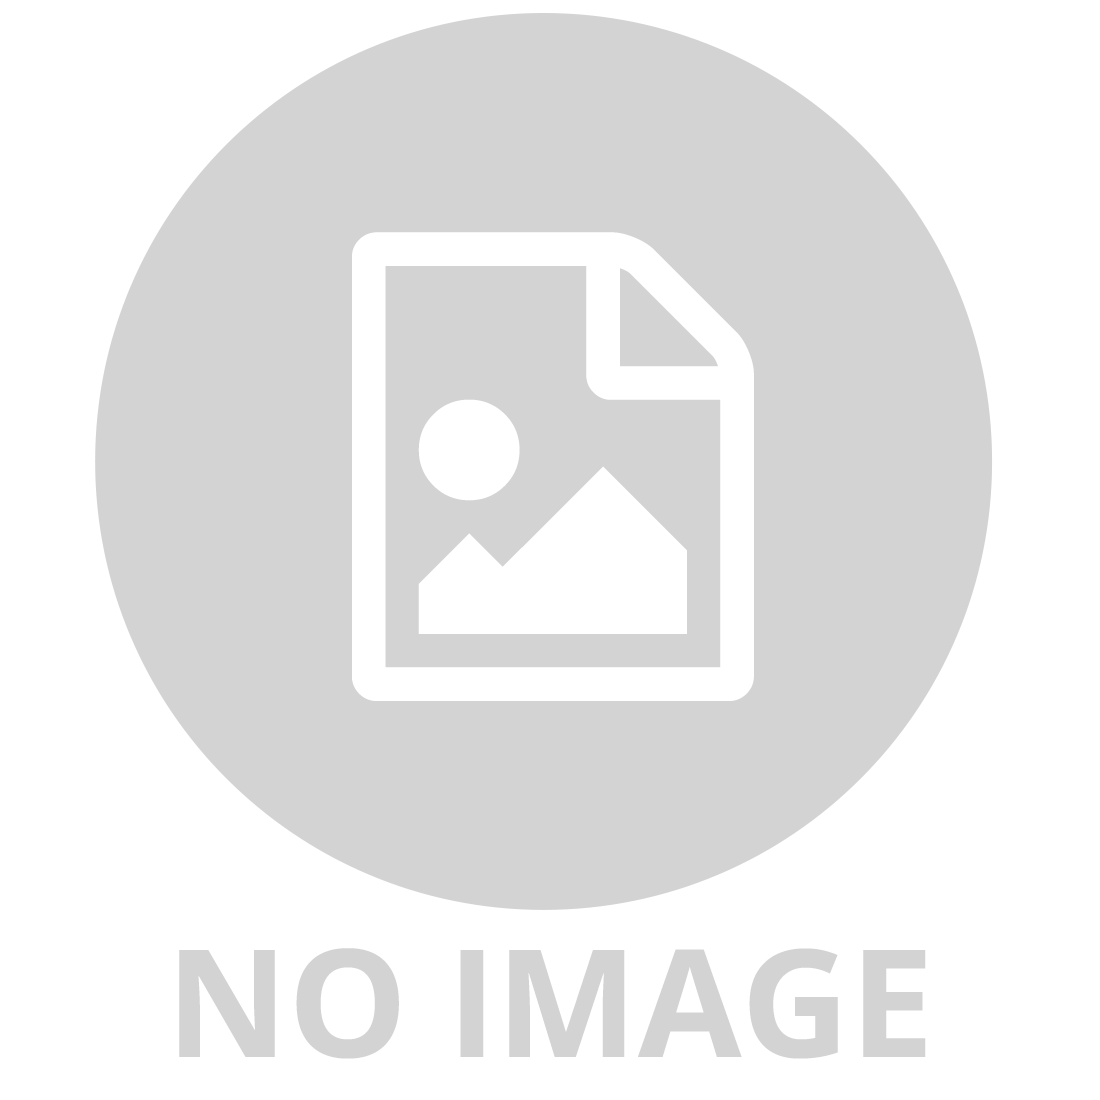 PICCO 1321 ABC CYLINDER/PISTON XP 12